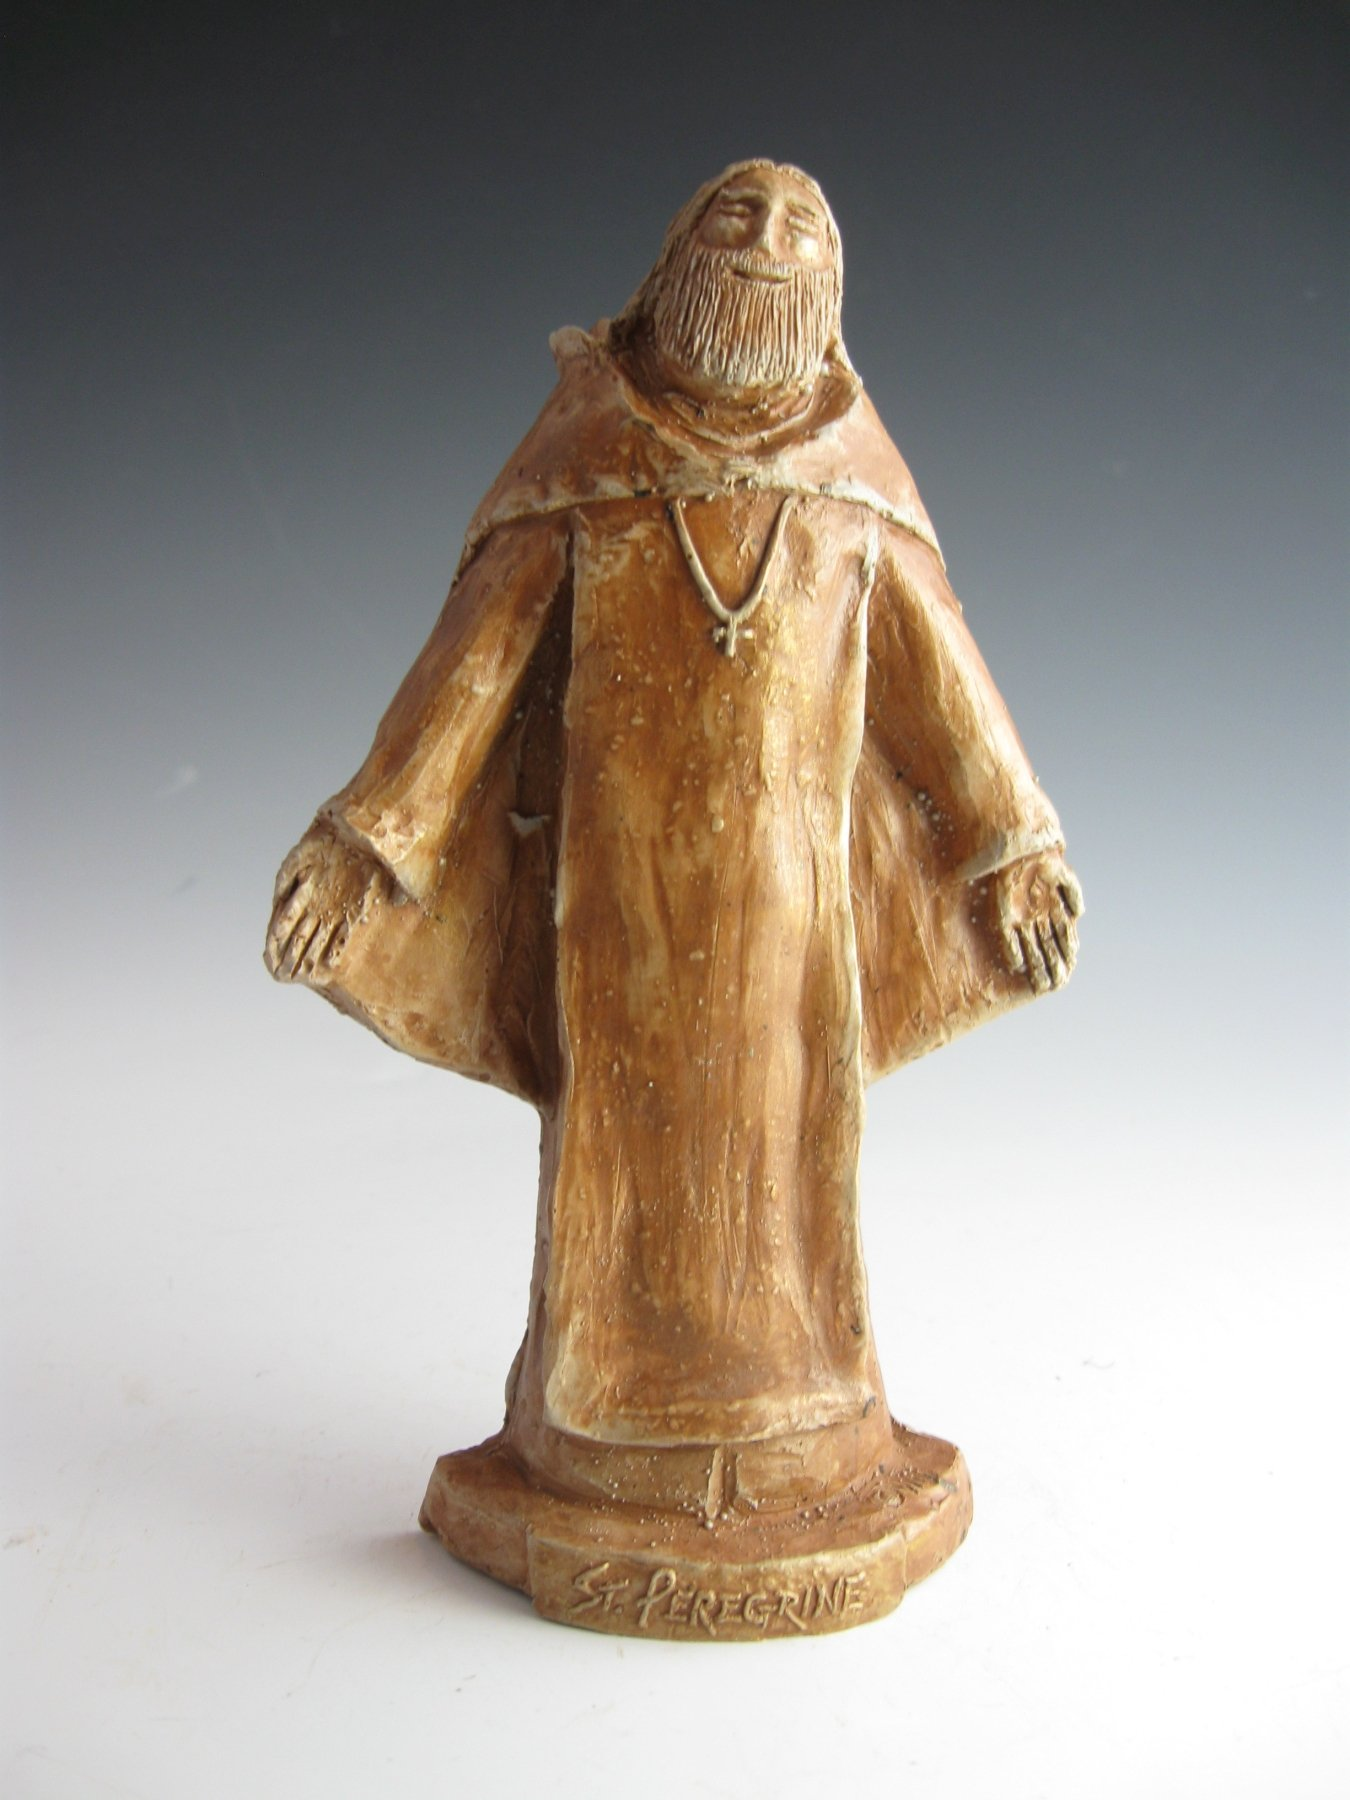 St Peregrine, Patron Cancer Patients & Those Cured, Handmade Statue